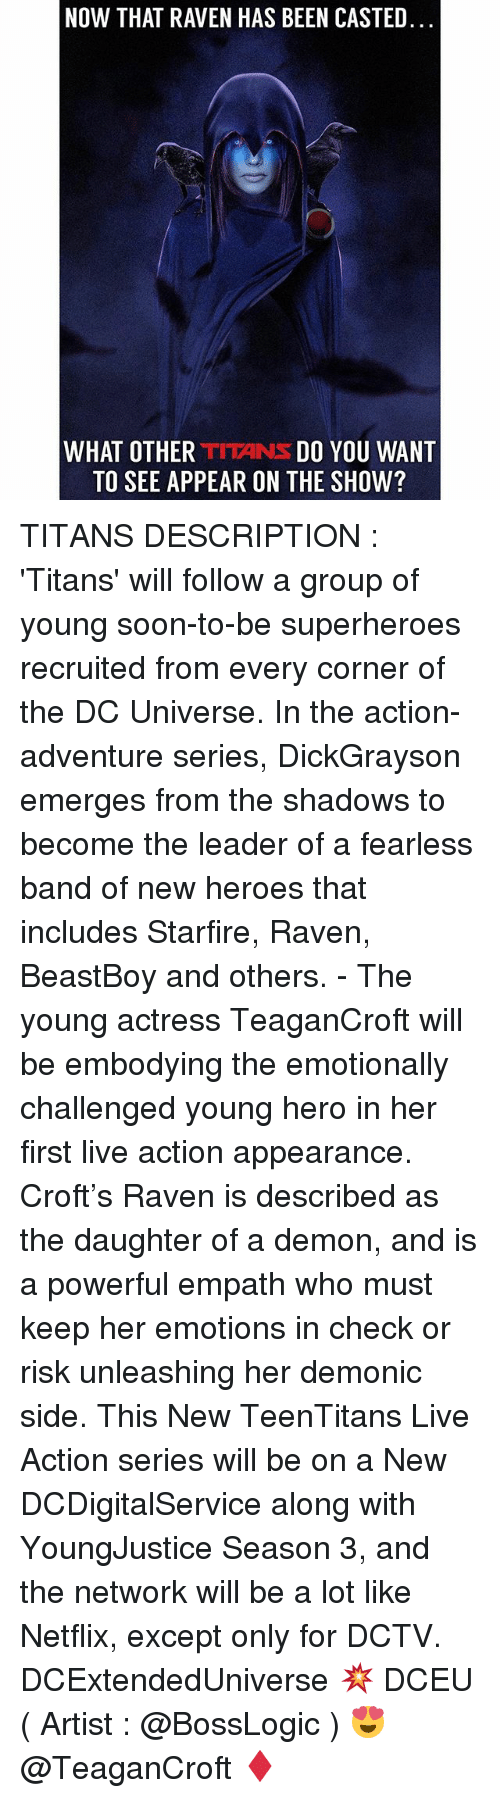 Memes, Netflix, and Soon...: NOW THAT RAVEN HAS BEEN CASTED  WHAT OTHER TITANS DO YOU WANT  TO SEE APPEAR ON THE SHOW? TITANS DESCRIPTION : 'Titans' will follow a group of young soon-to-be superheroes recruited from every corner of the DC Universe. In the action-adventure series, DickGrayson emerges from the shadows to become the leader of a fearless band of new heroes that includes Starfire, Raven, BeastBoy and others. - The young actress TeaganCroft will be embodying the emotionally challenged young hero in her first live action appearance. Croft's Raven is described as the daughter of a demon, and is a powerful empath who must keep her emotions in check or risk unleashing her demonic side. This New TeenTitans Live Action series will be on a New DCDigitalService along with YoungJustice Season 3, and the network will be a lot like Netflix, except only for DCTV. DCExtendedUniverse 💥 DCEU ( Artist : @BossLogic ) 😍 @TeaganCroft ♦️